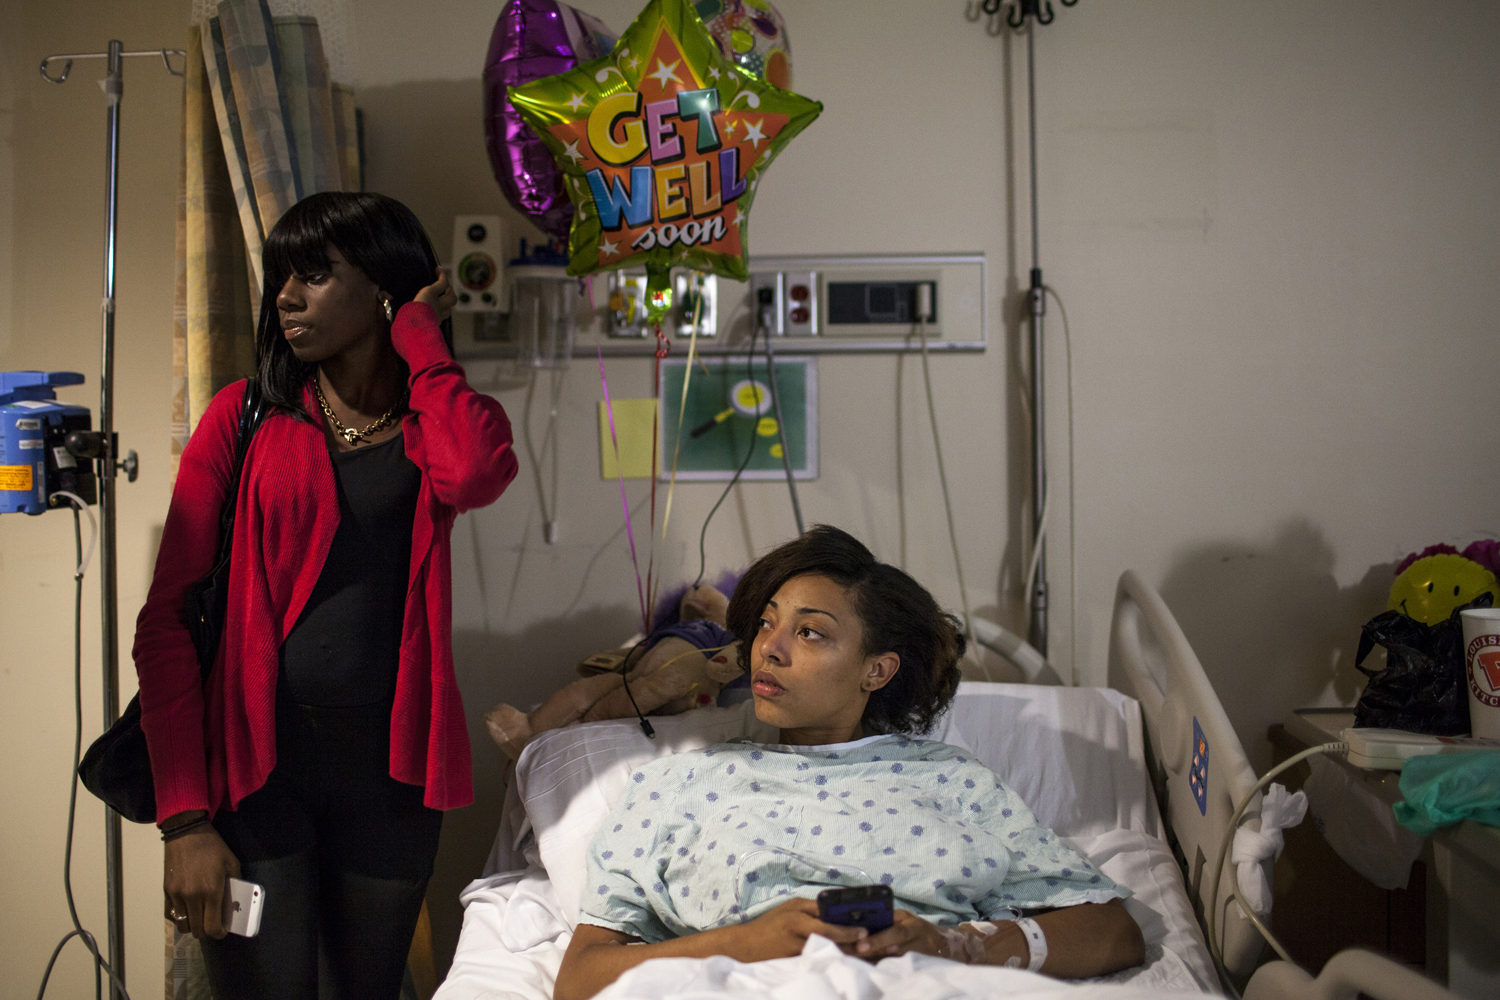 October 2, 2013. Sarah, medicated on high doses of pain killers, lies in a hospital bed surrounded by friends and get well soon gifts, the day after she was shot in the foot outside her family's home in East Flatbush. She heard shots and started to run, but a bullet ricocheted off the sidewalk  and lodged in her heel. It had to be surgically removed.